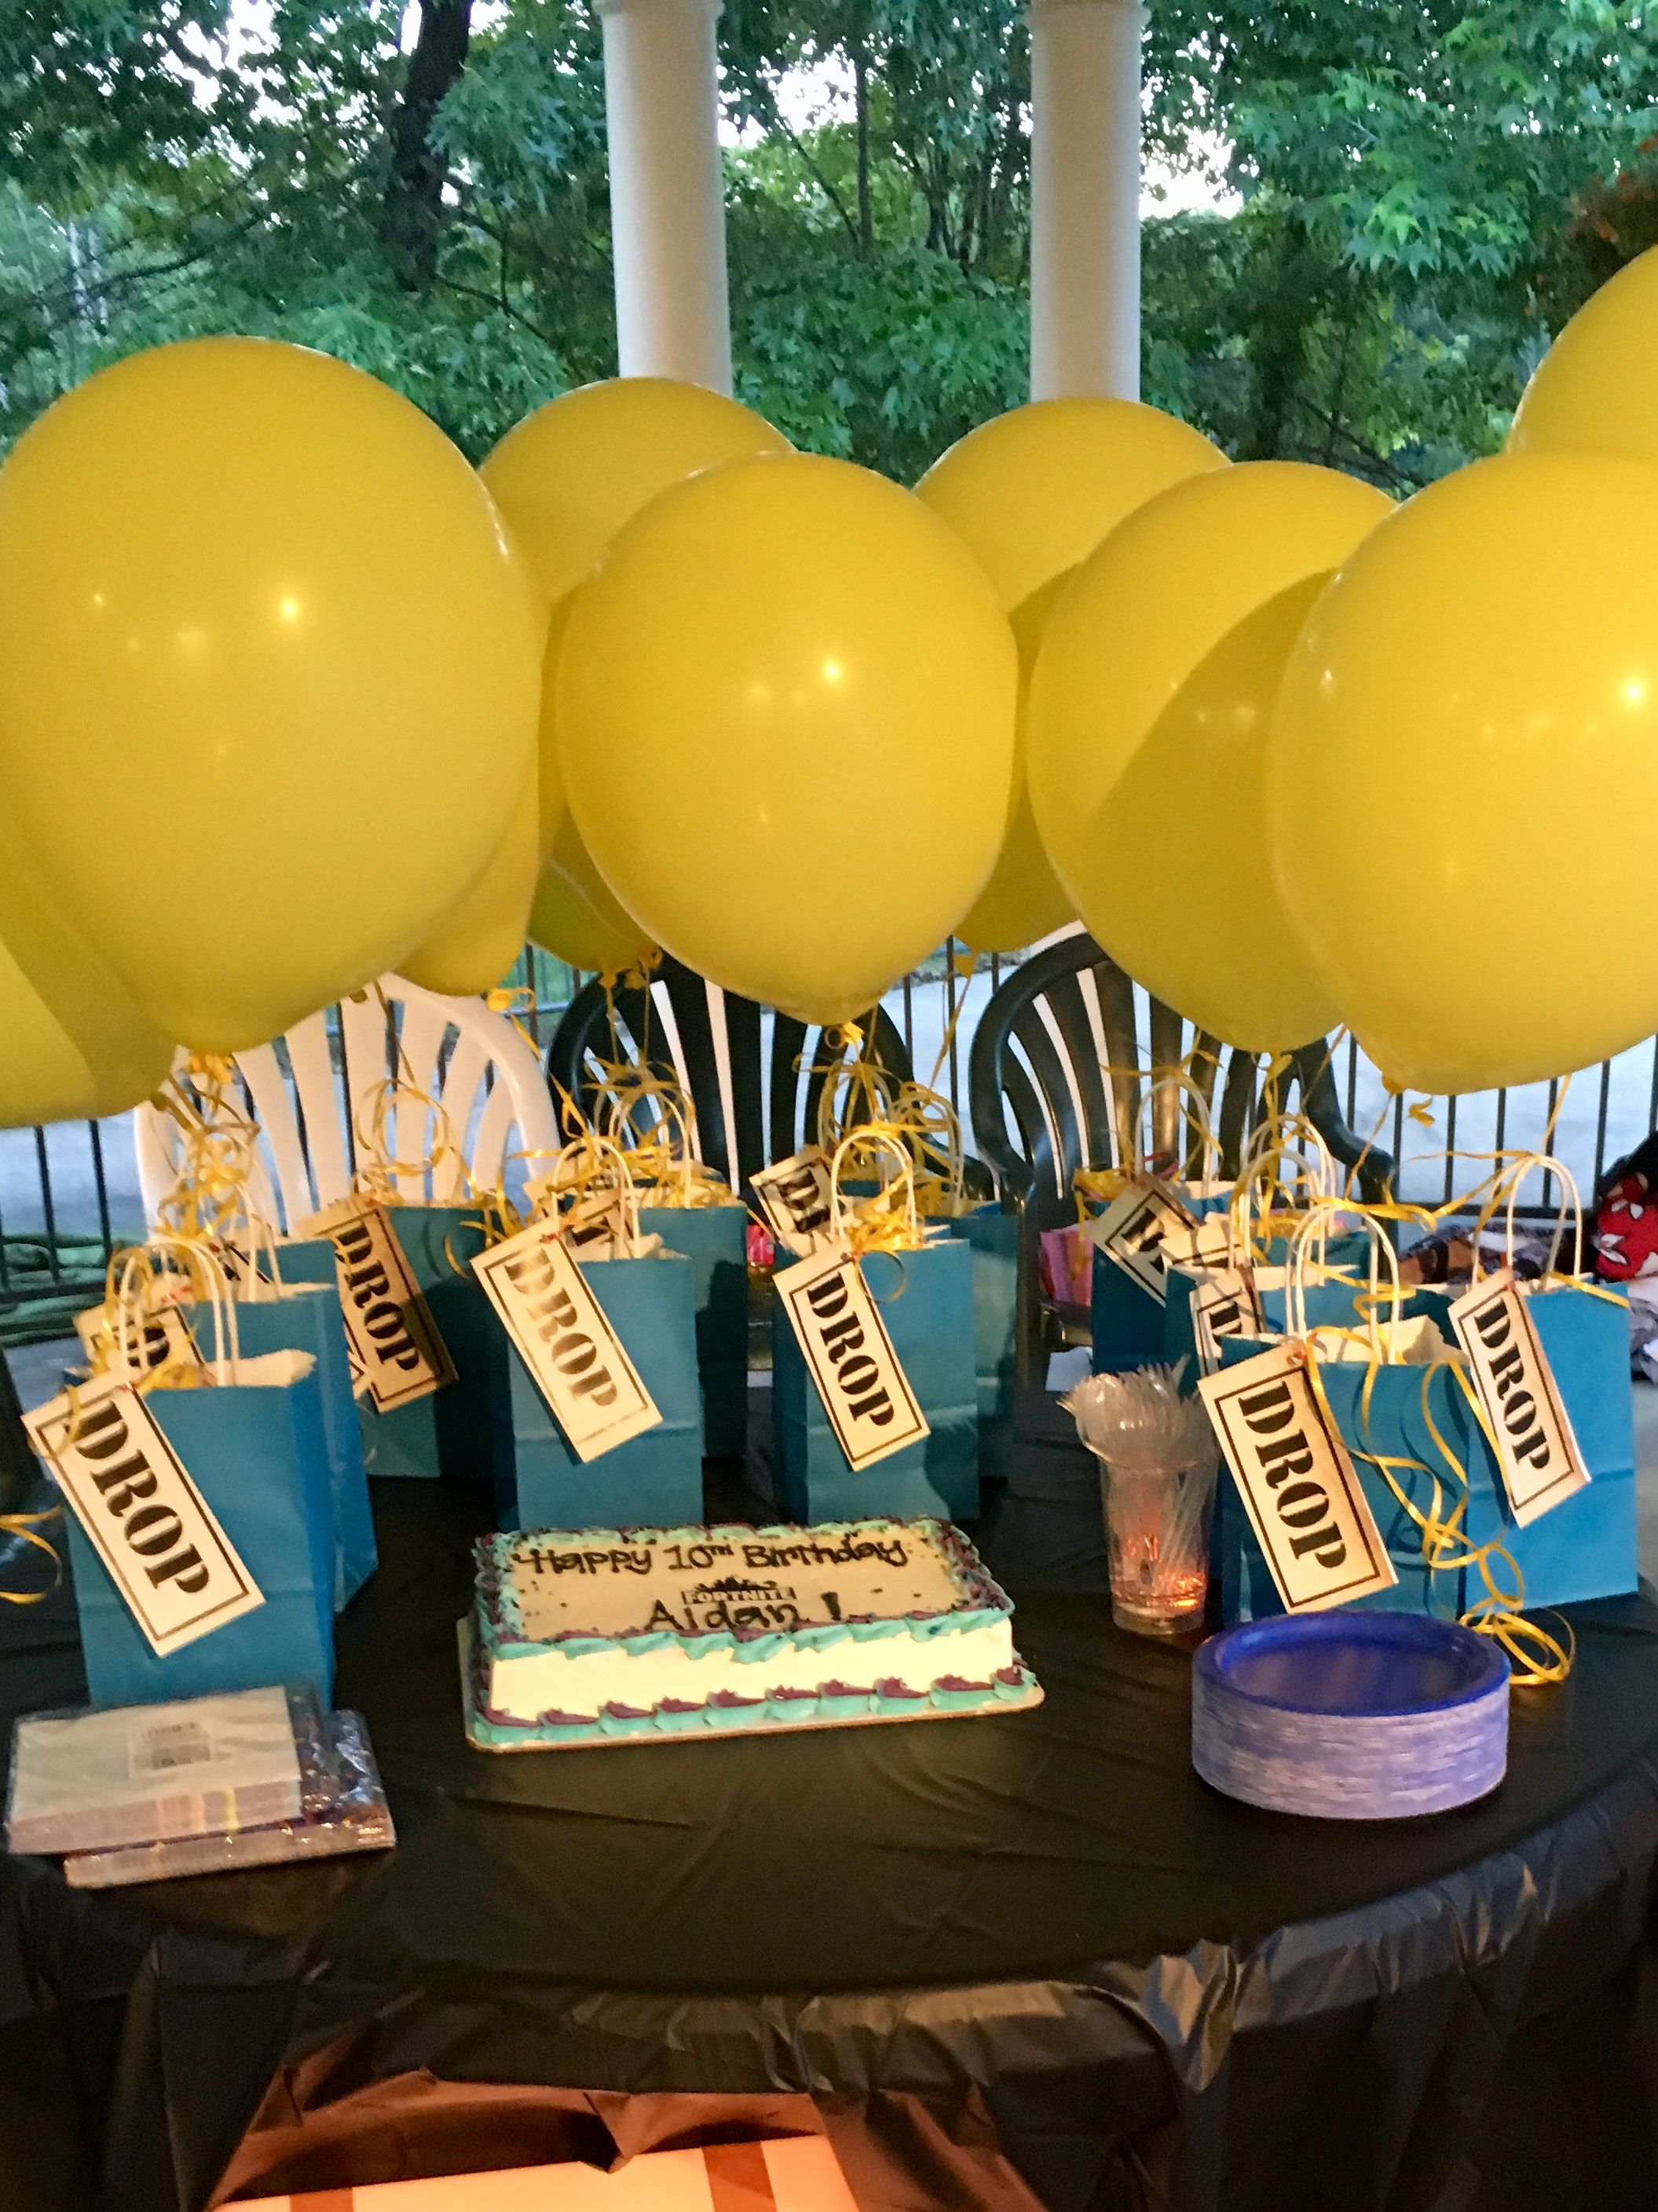 fortnite birthday pool party great way to incorporate the game and getting outside for fun have it at night with water guns glow balls - fortnite geburtstag event